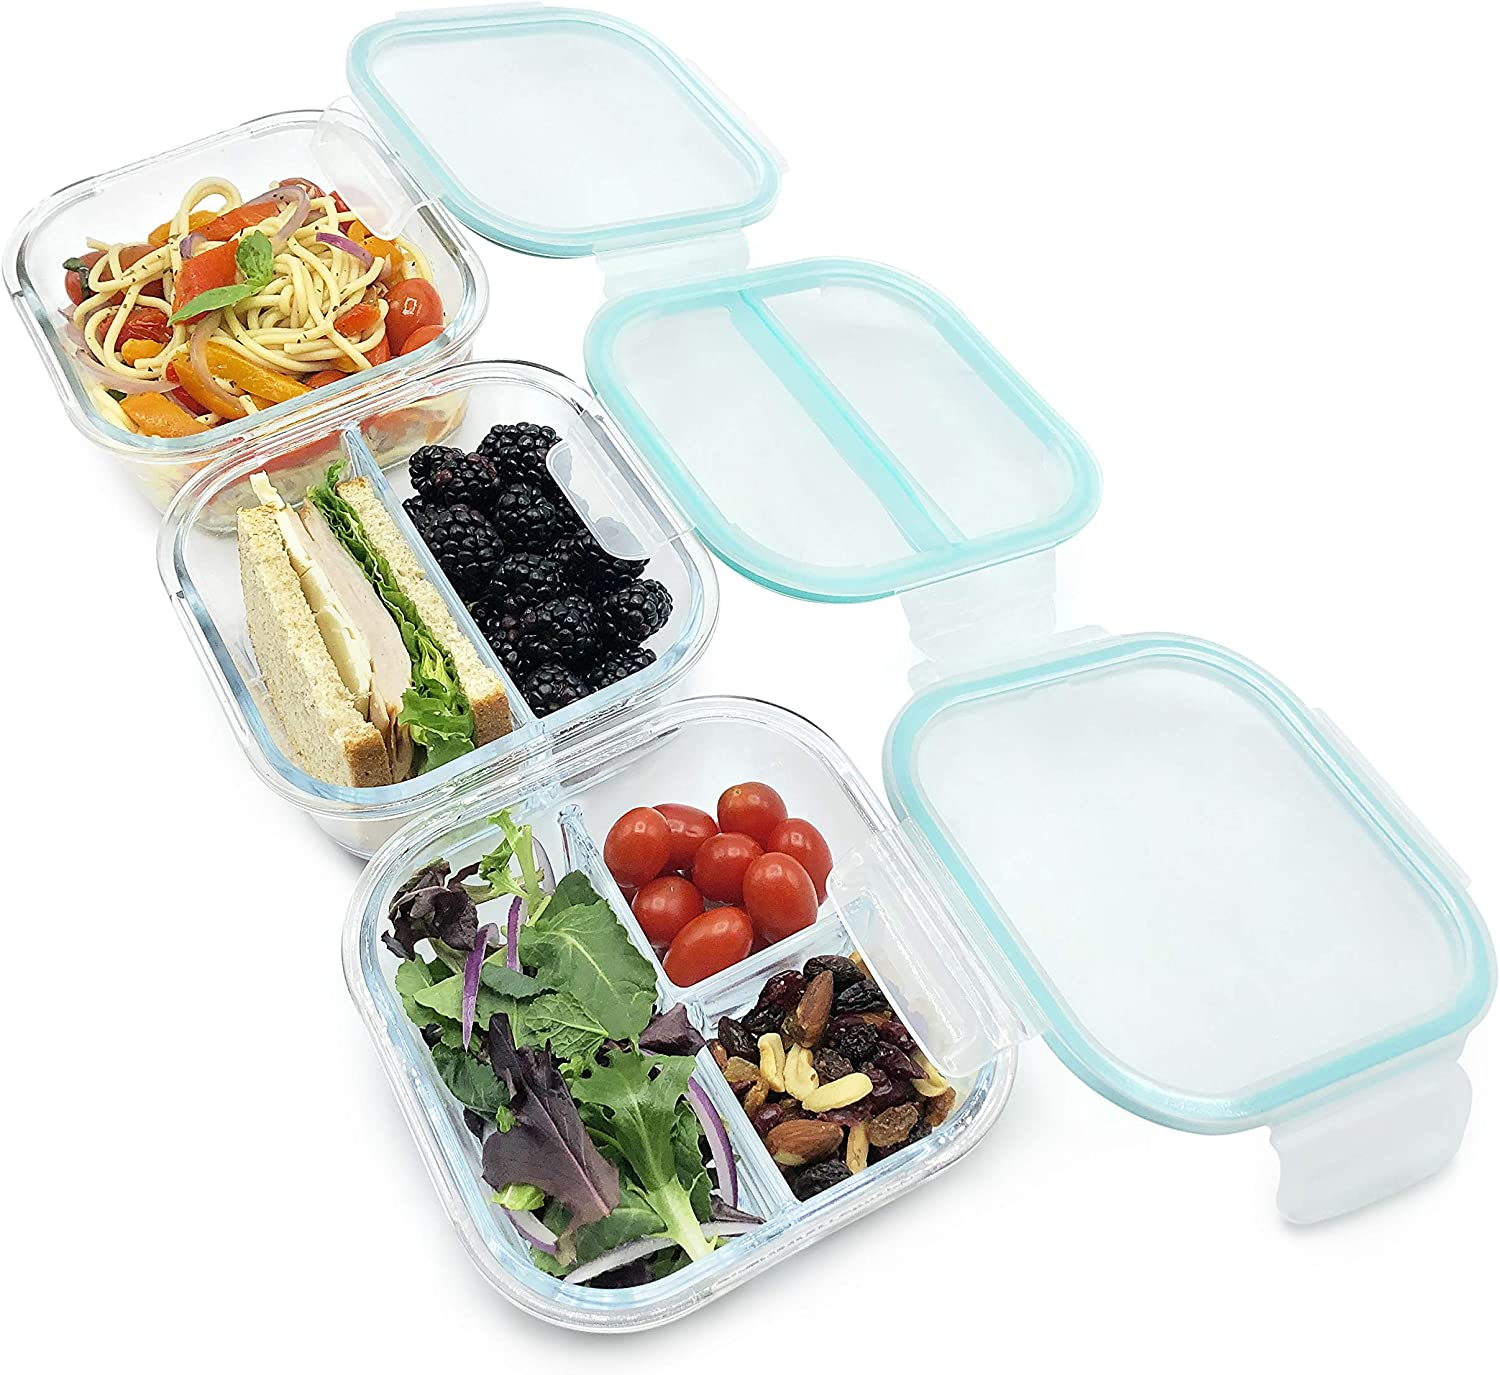 Glass Food Storage Containers with Lids | 1, 2, 3 Compartment, Meal Prep Container Set | BPA Free, Leak Proof | Square Shape, 27oz/800ml (3 pack)